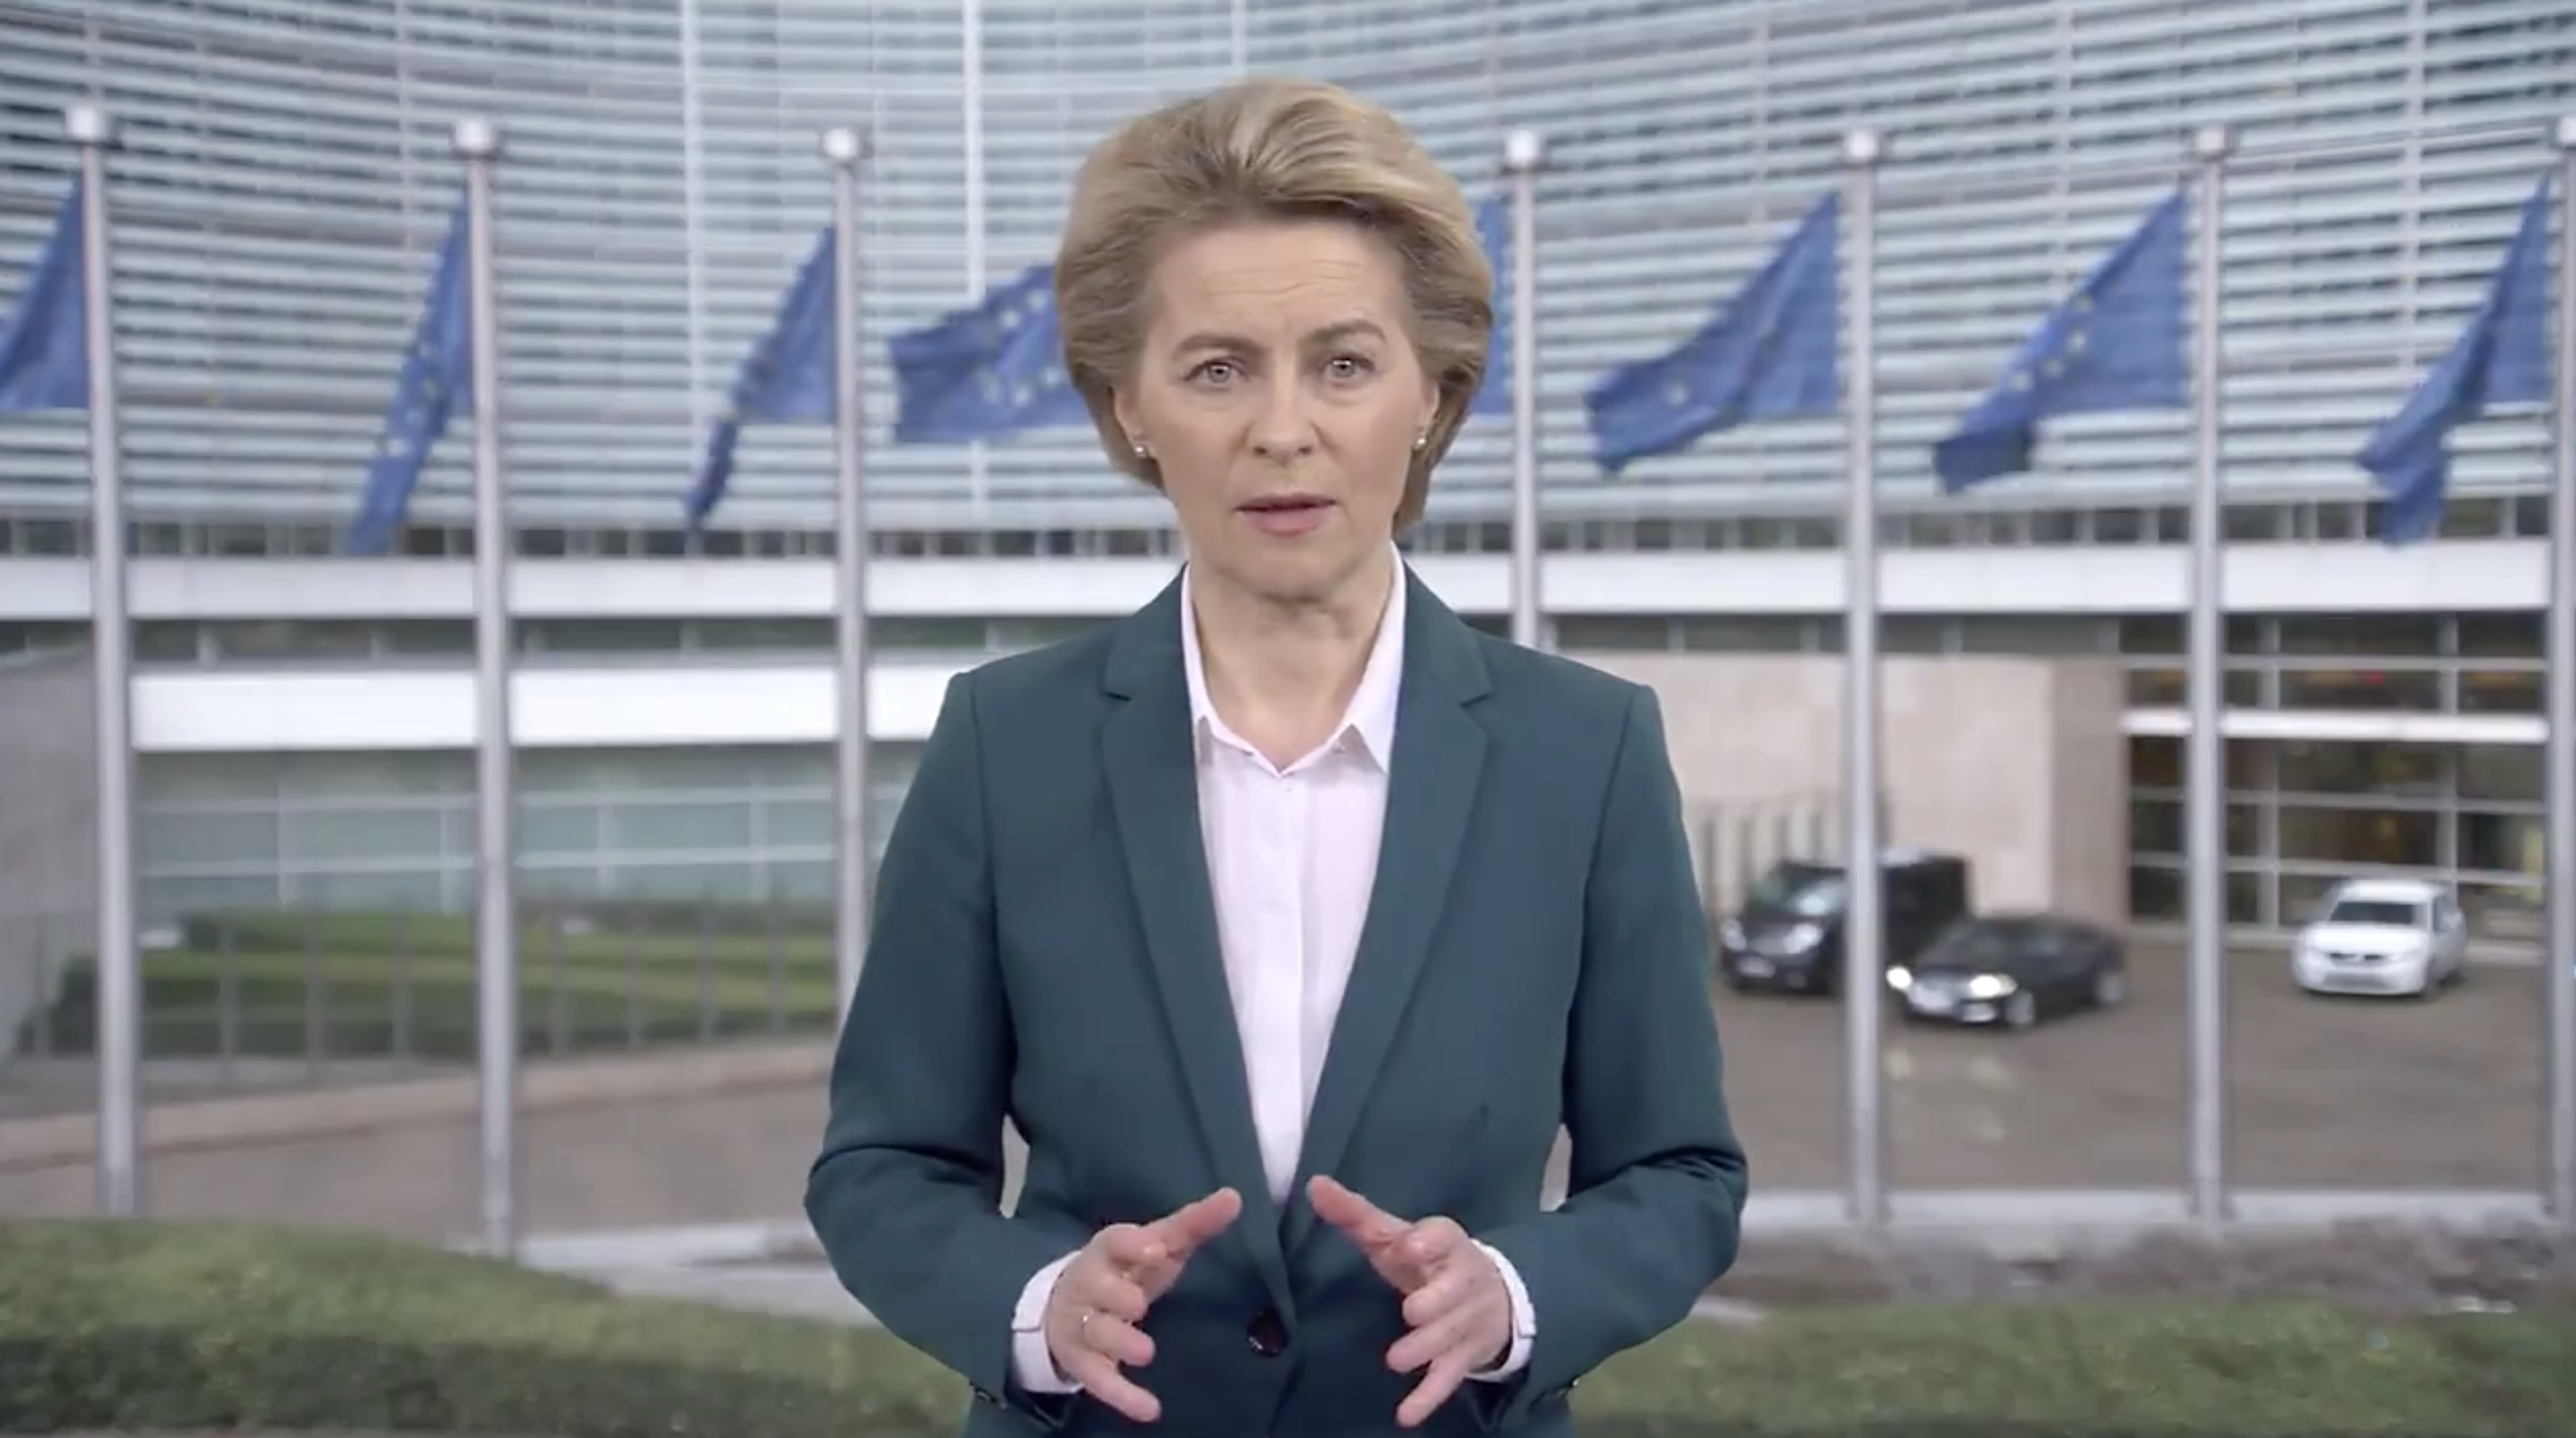 The European Way: the EU is changing. Discover how and why.